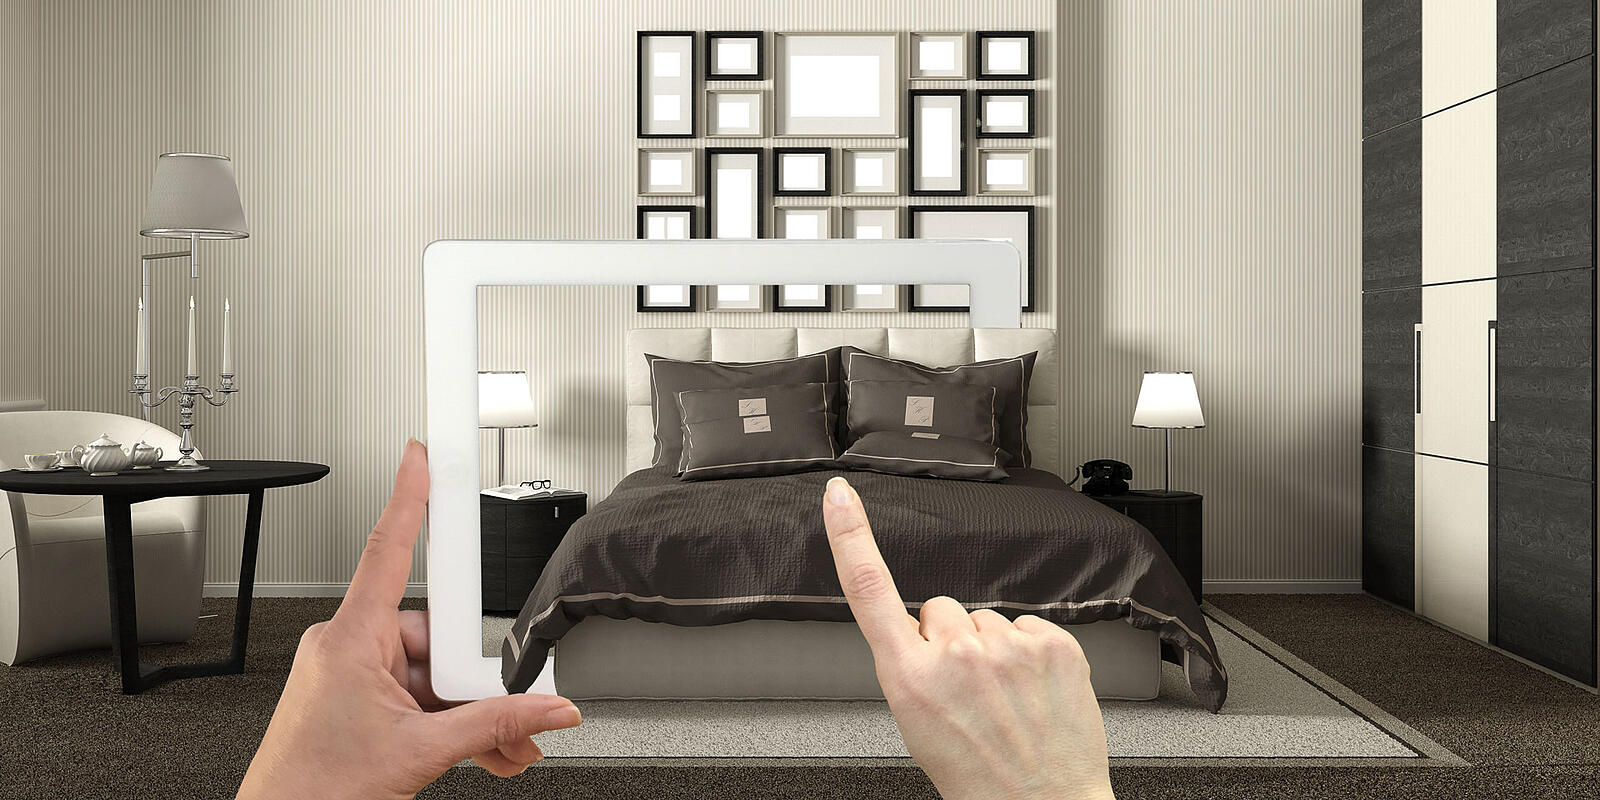 The technologies that will deliver returns for hotels and resorts in times of crisis